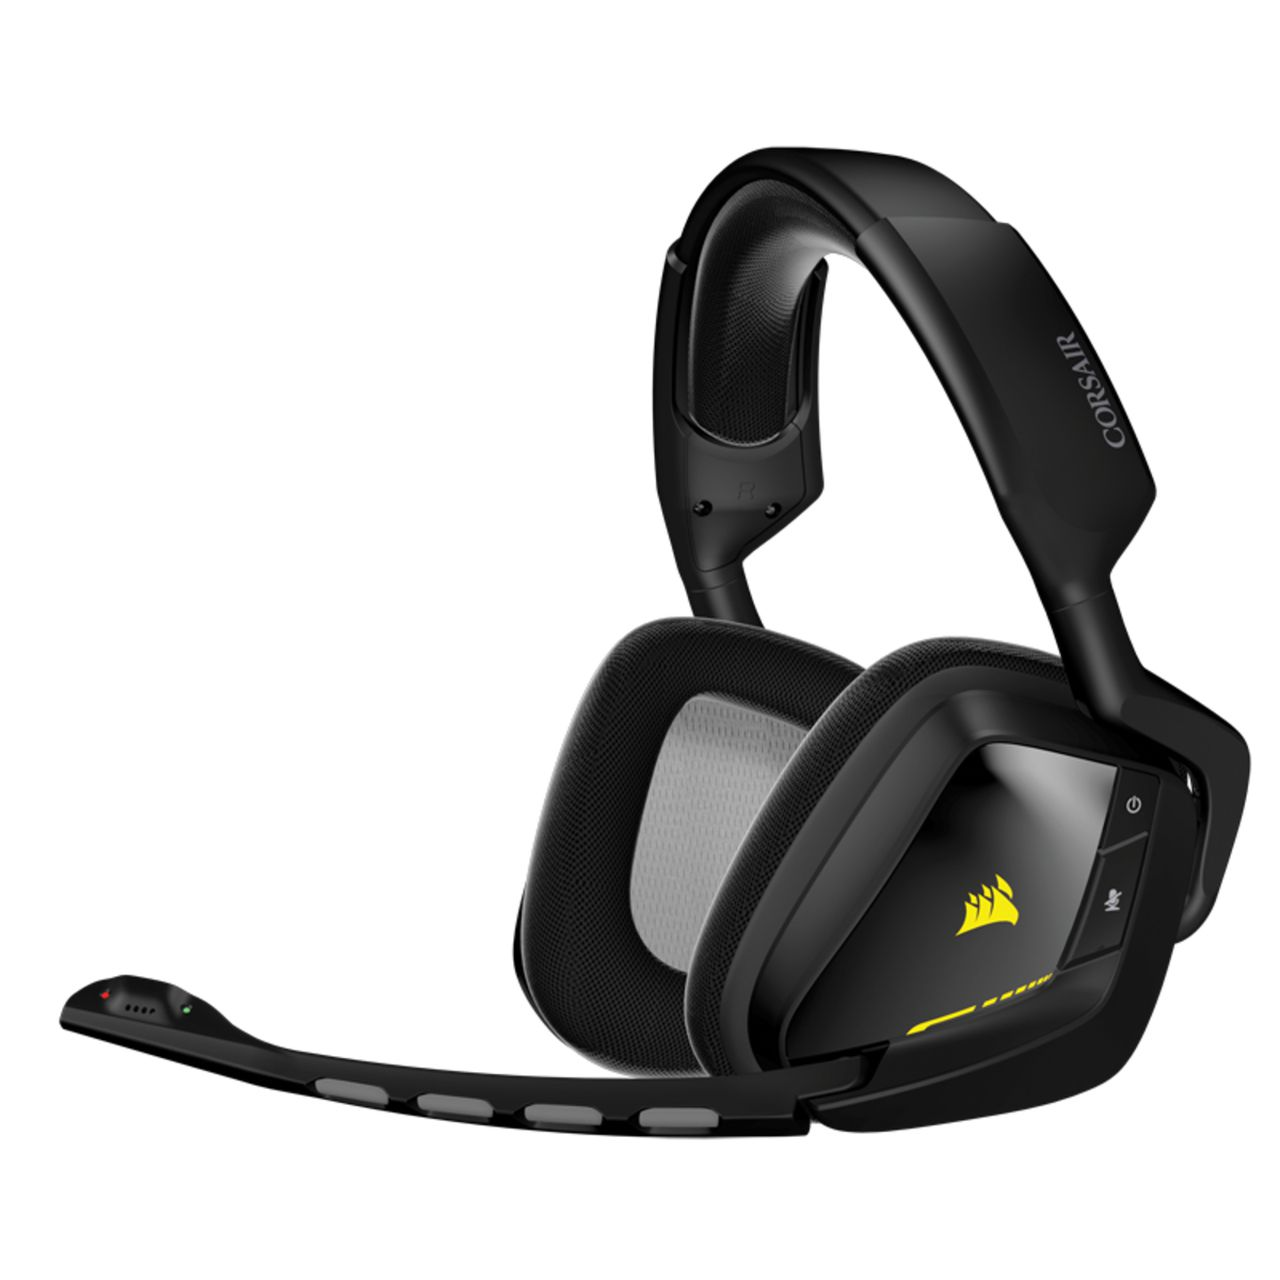 Headset Corsair VOID PRO RGB Wireless Dolby 7.1 USB Gaming CARBON CA-9011152-NA